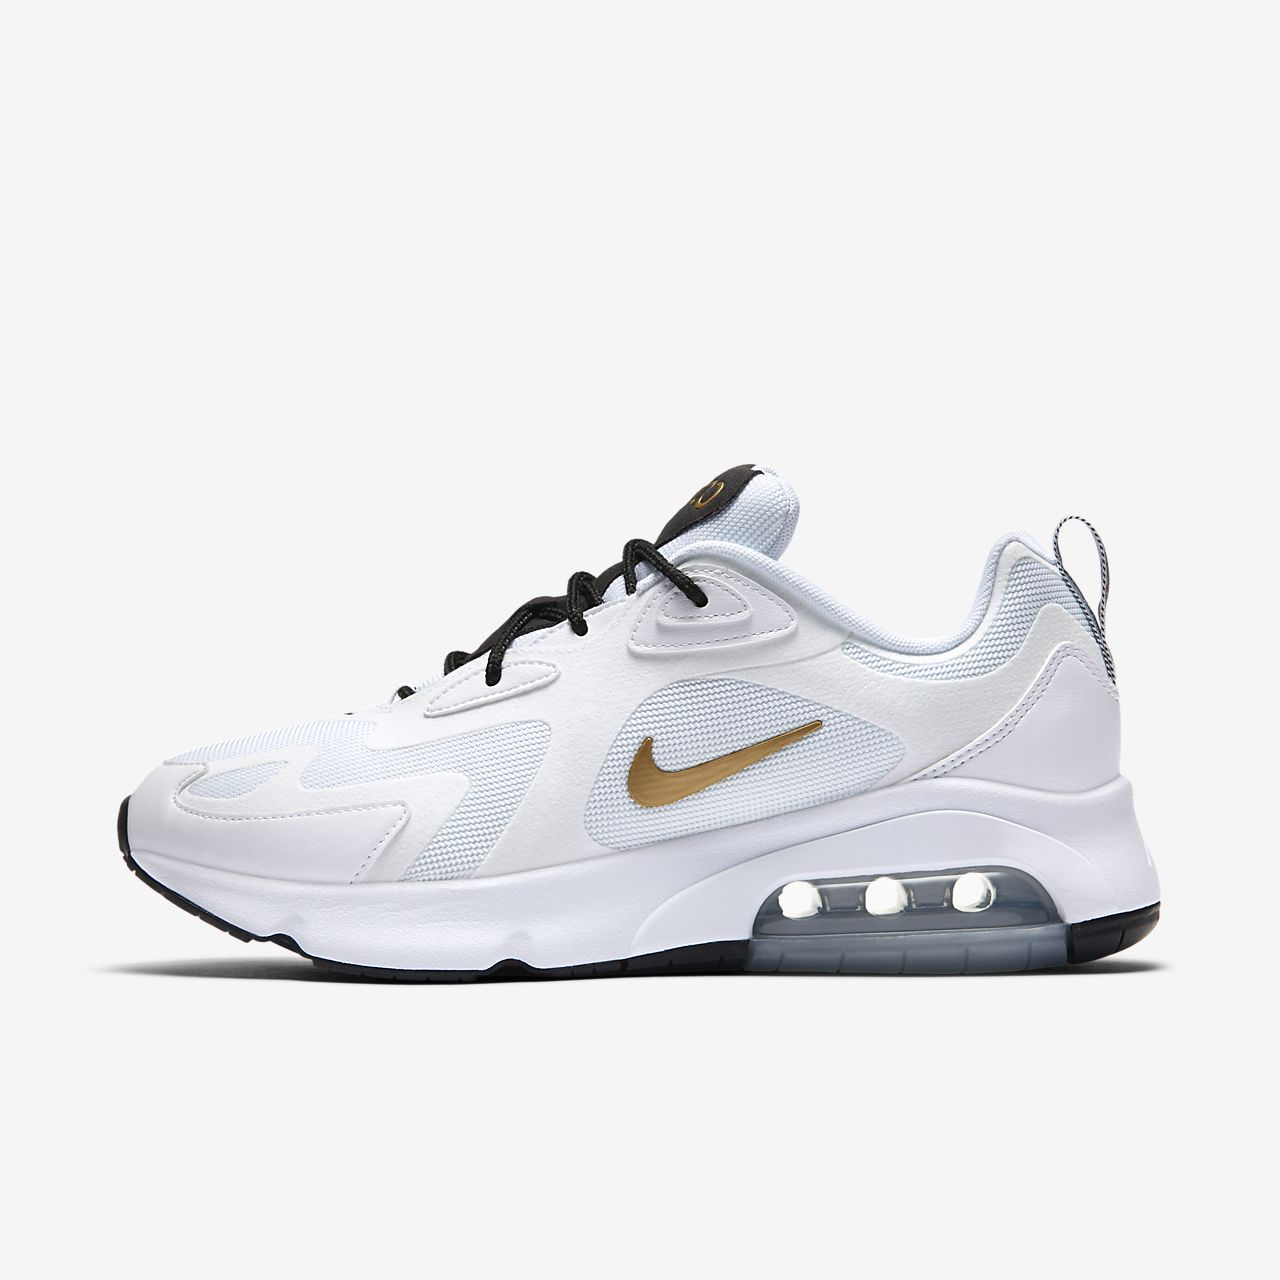 Optimal Nike Shoes Men Air Max Running Argent Femme Air Max 90